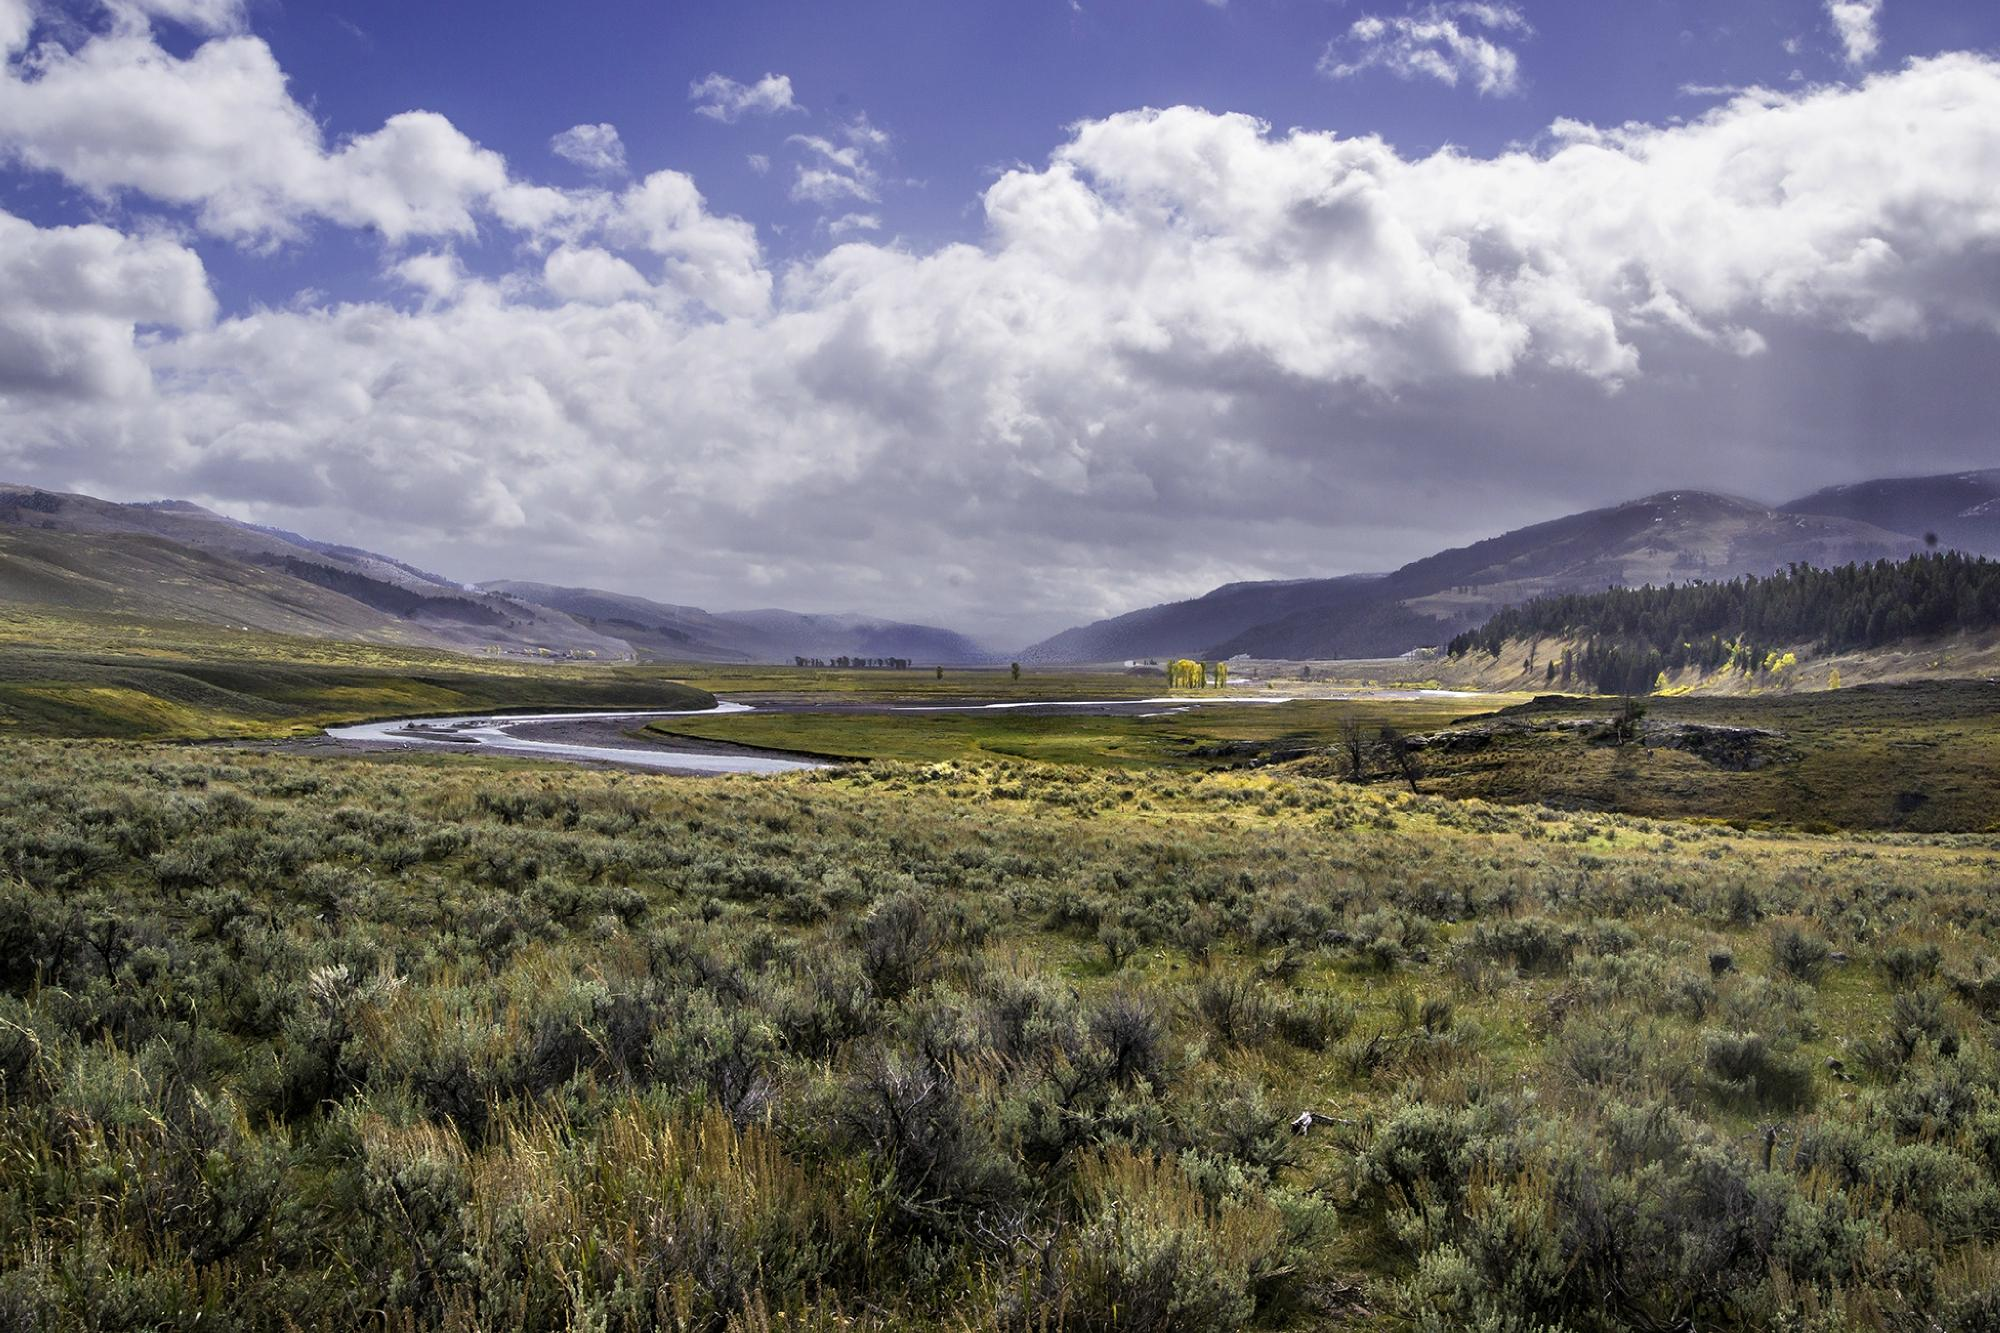 Here Are The Most Beautiful Places In Wyoming That You Must Visit Asap